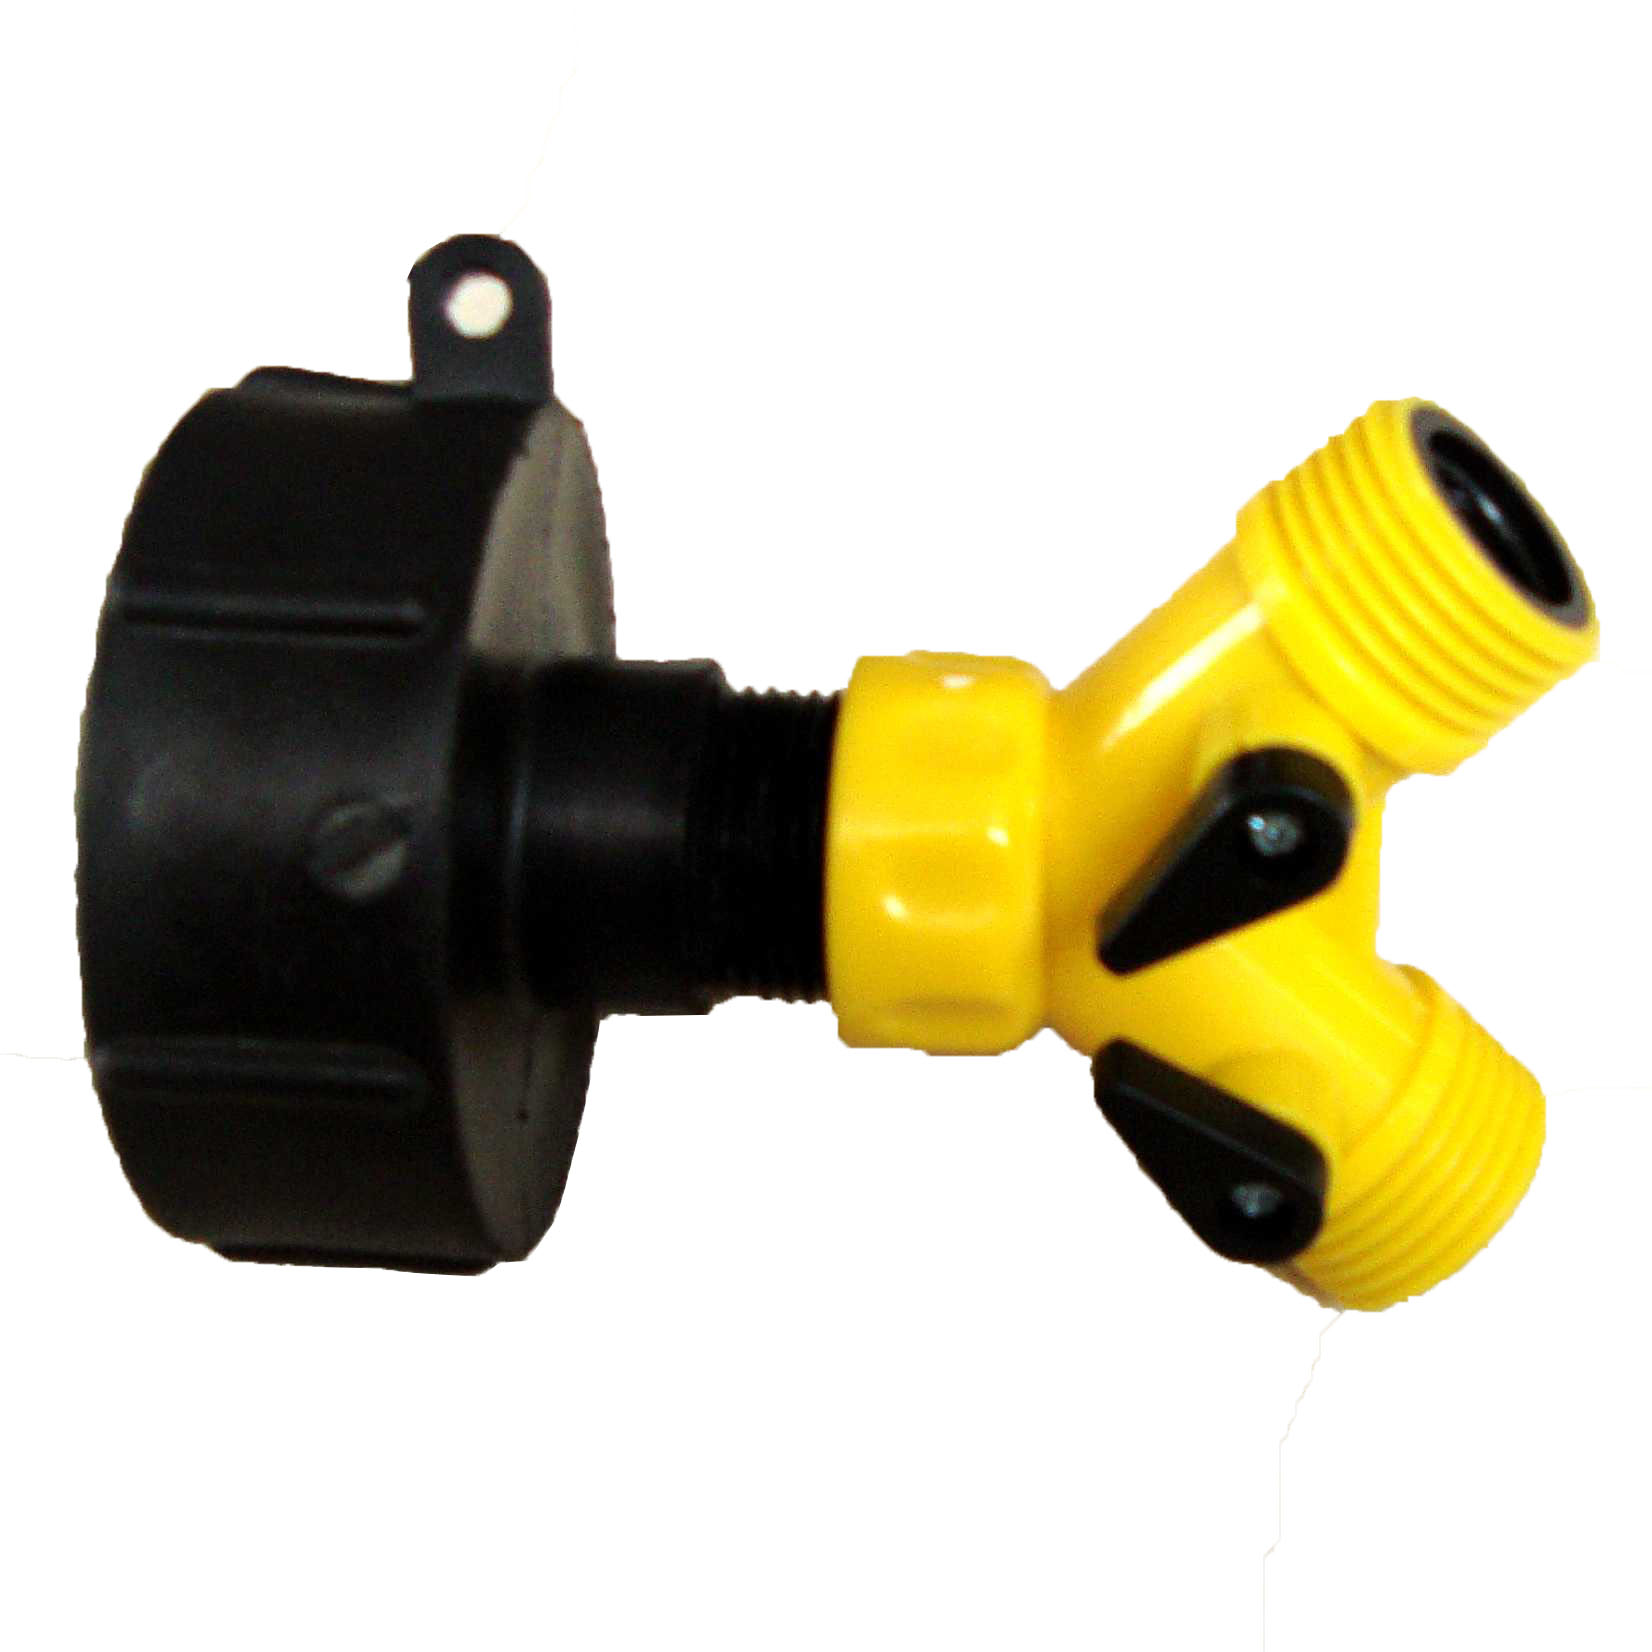 Ibc adapter to twin inch mm snap on push fit hose